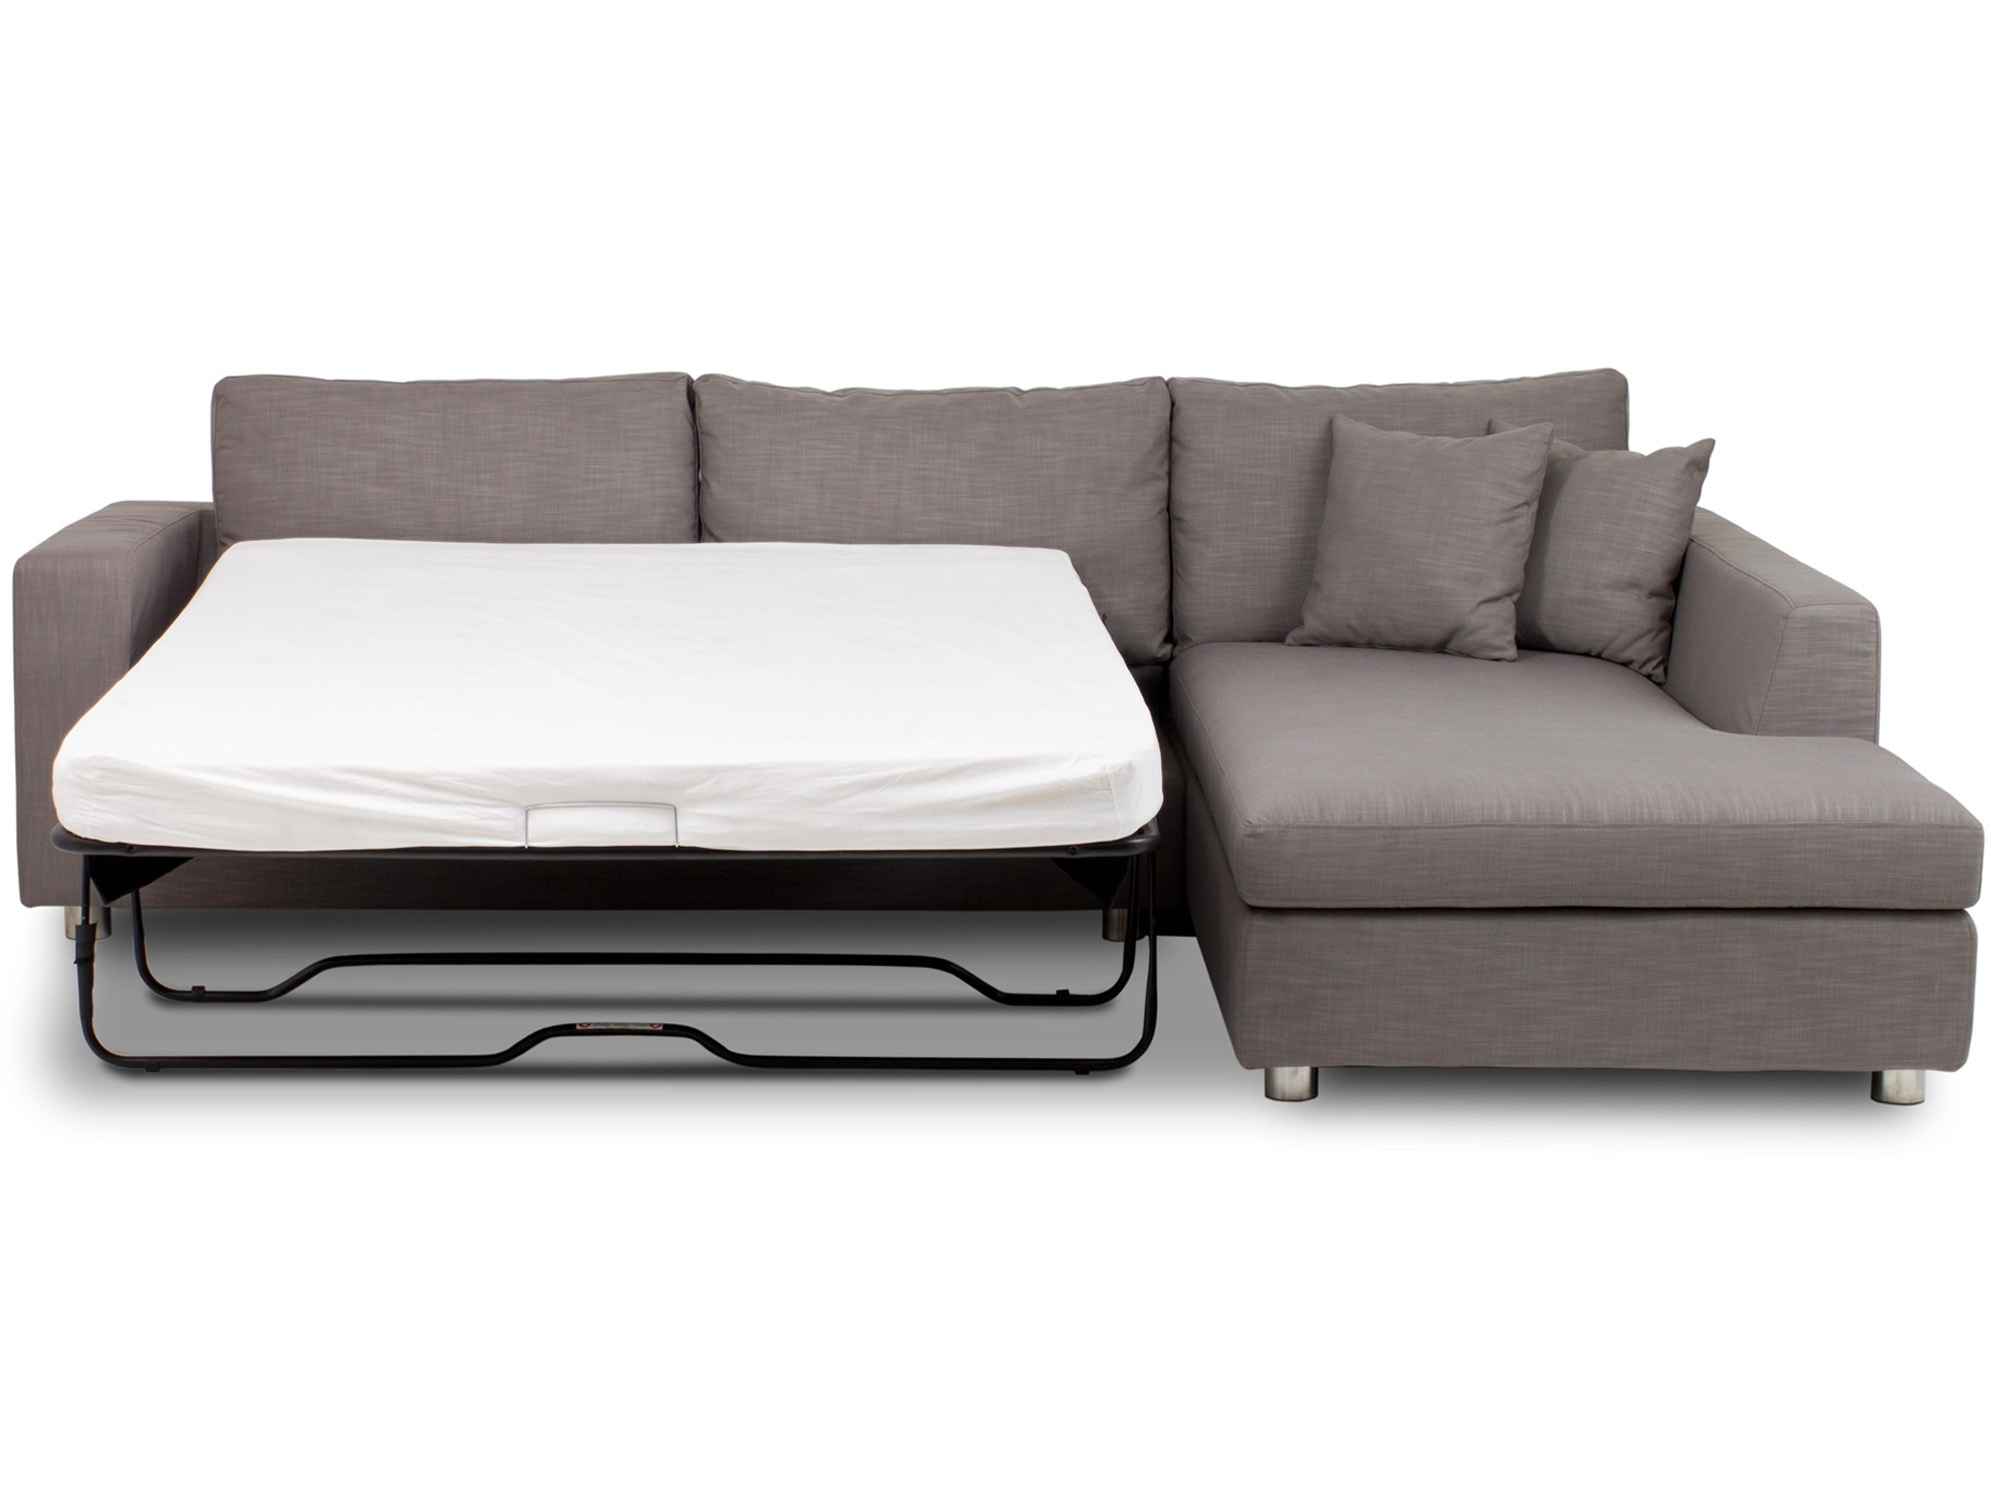 Fashionable Chaise Beds Intended For Mondo Storage – Corner Sofa Bed (View 7 of 15)